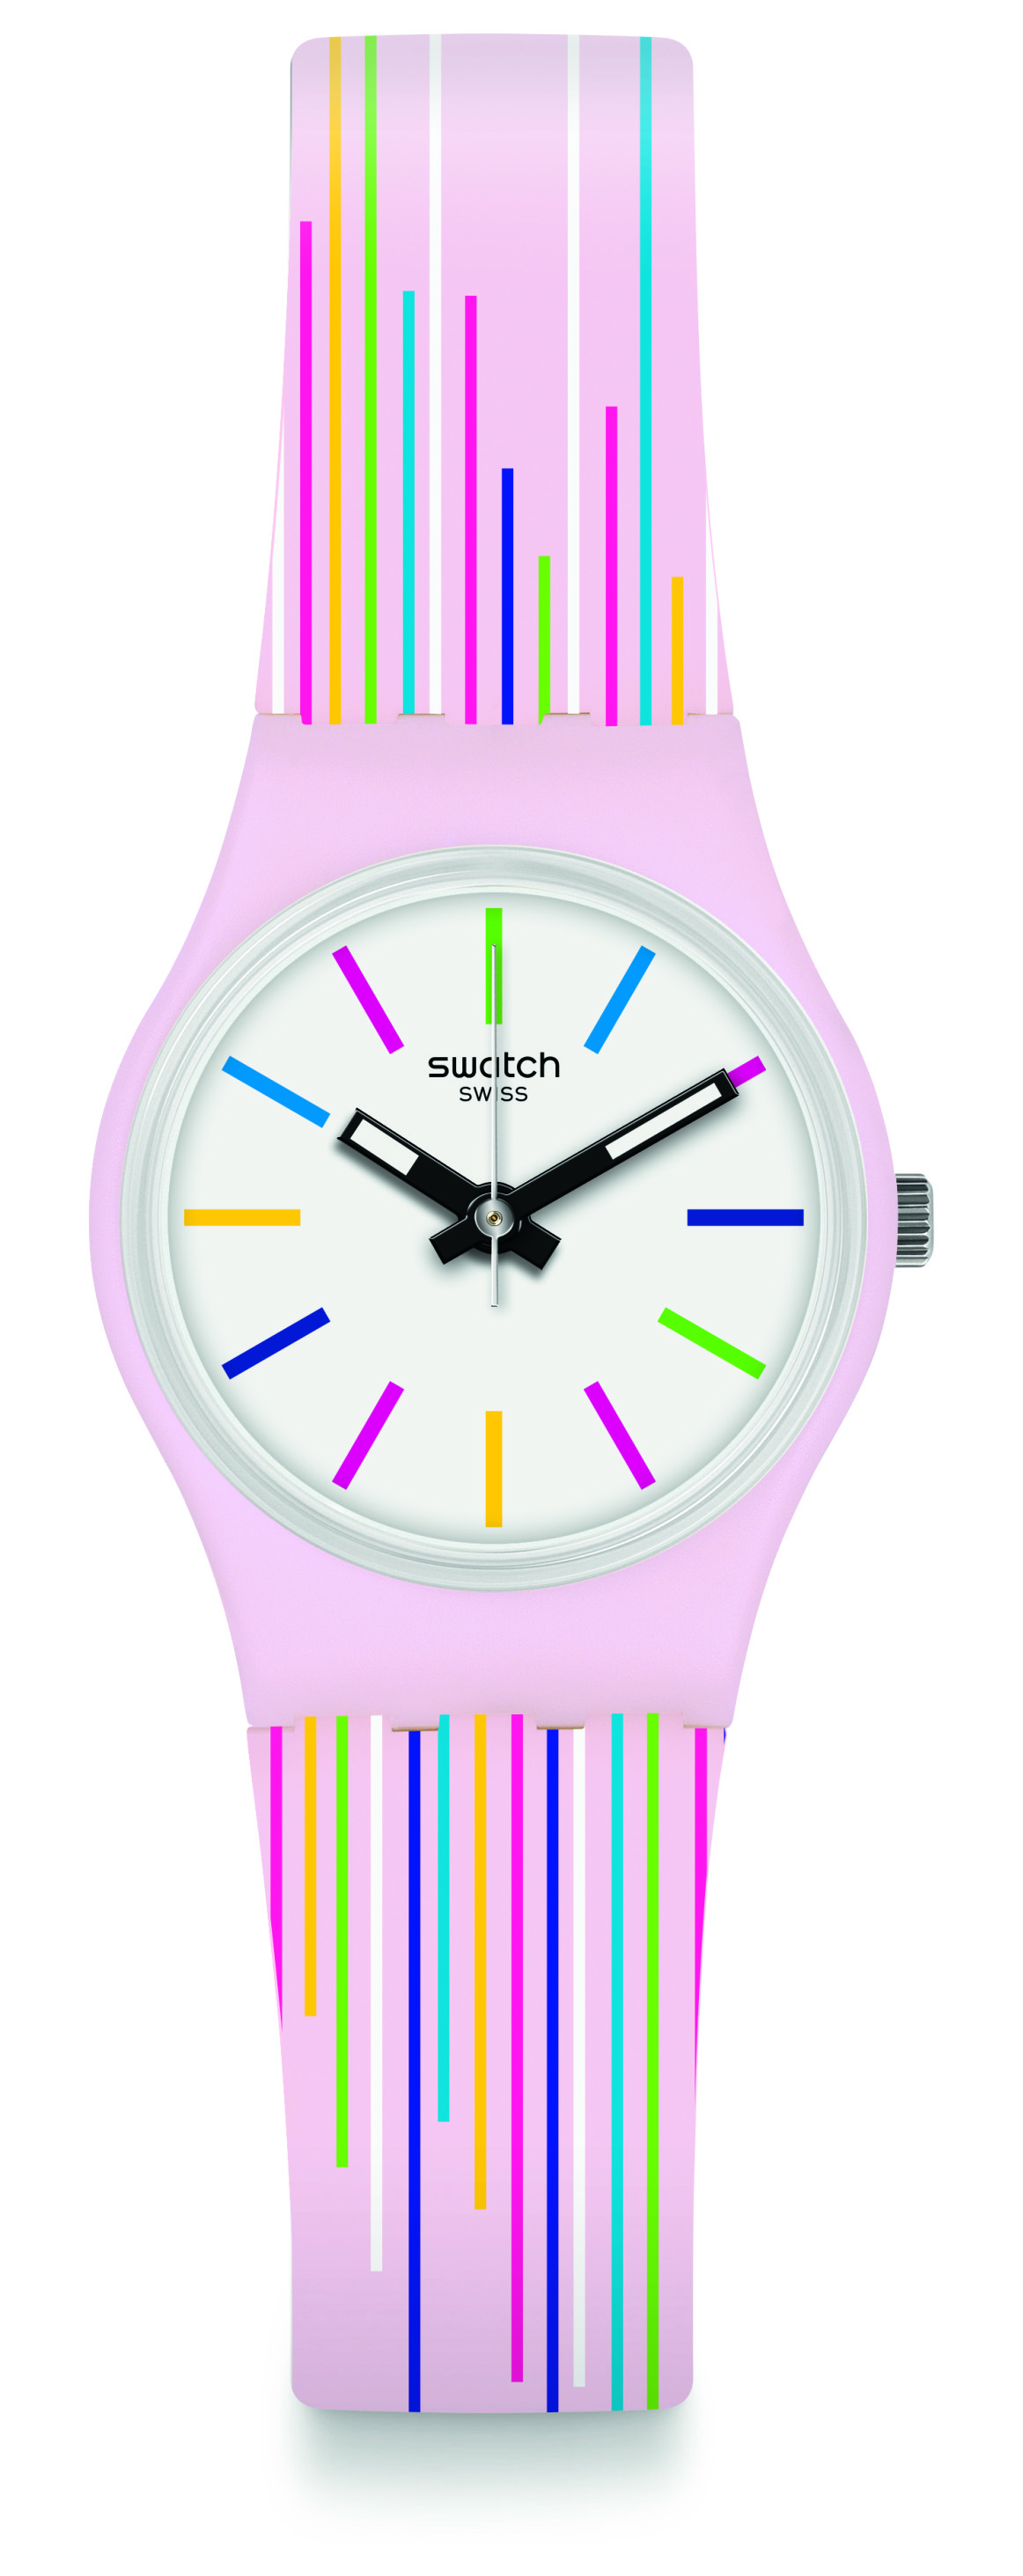 SWATCH Guimauve LP155